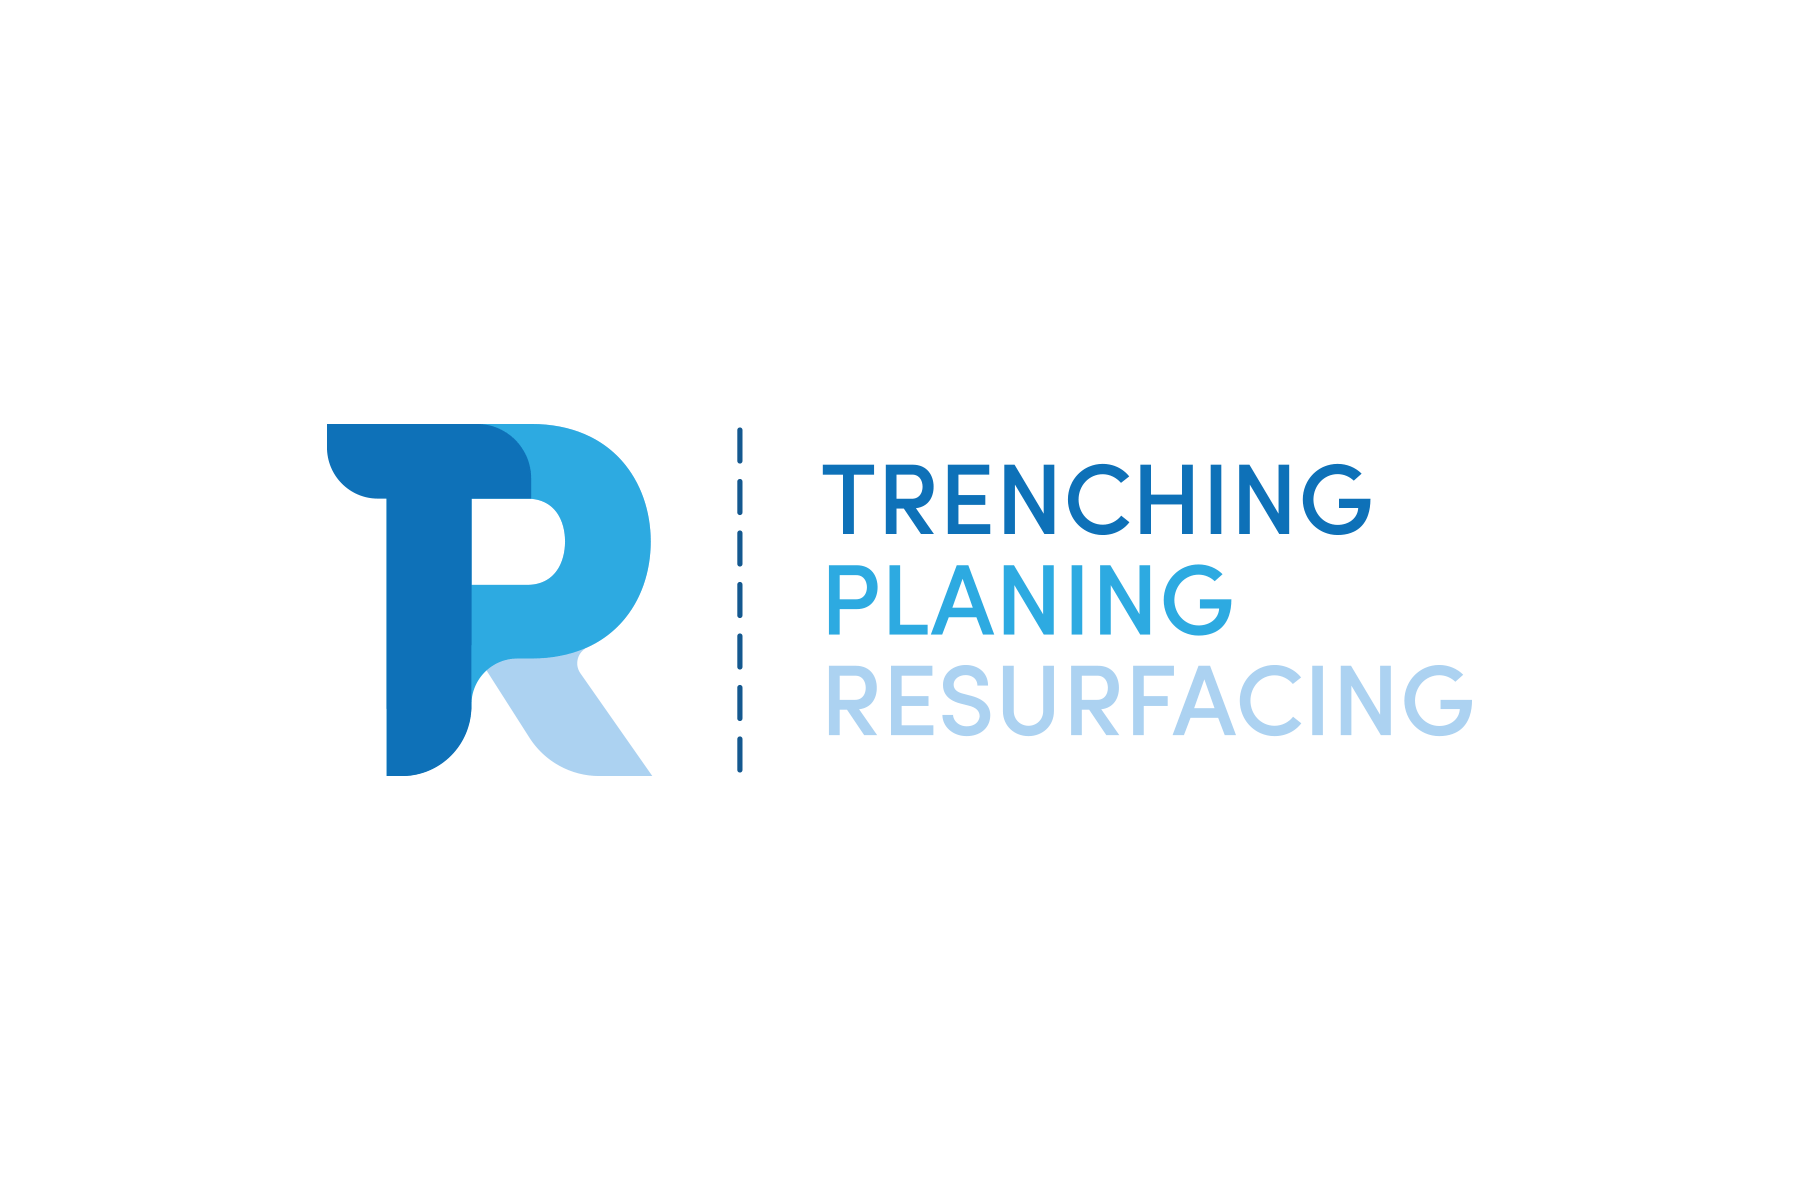 Trenching Planing Resurfacing Logo